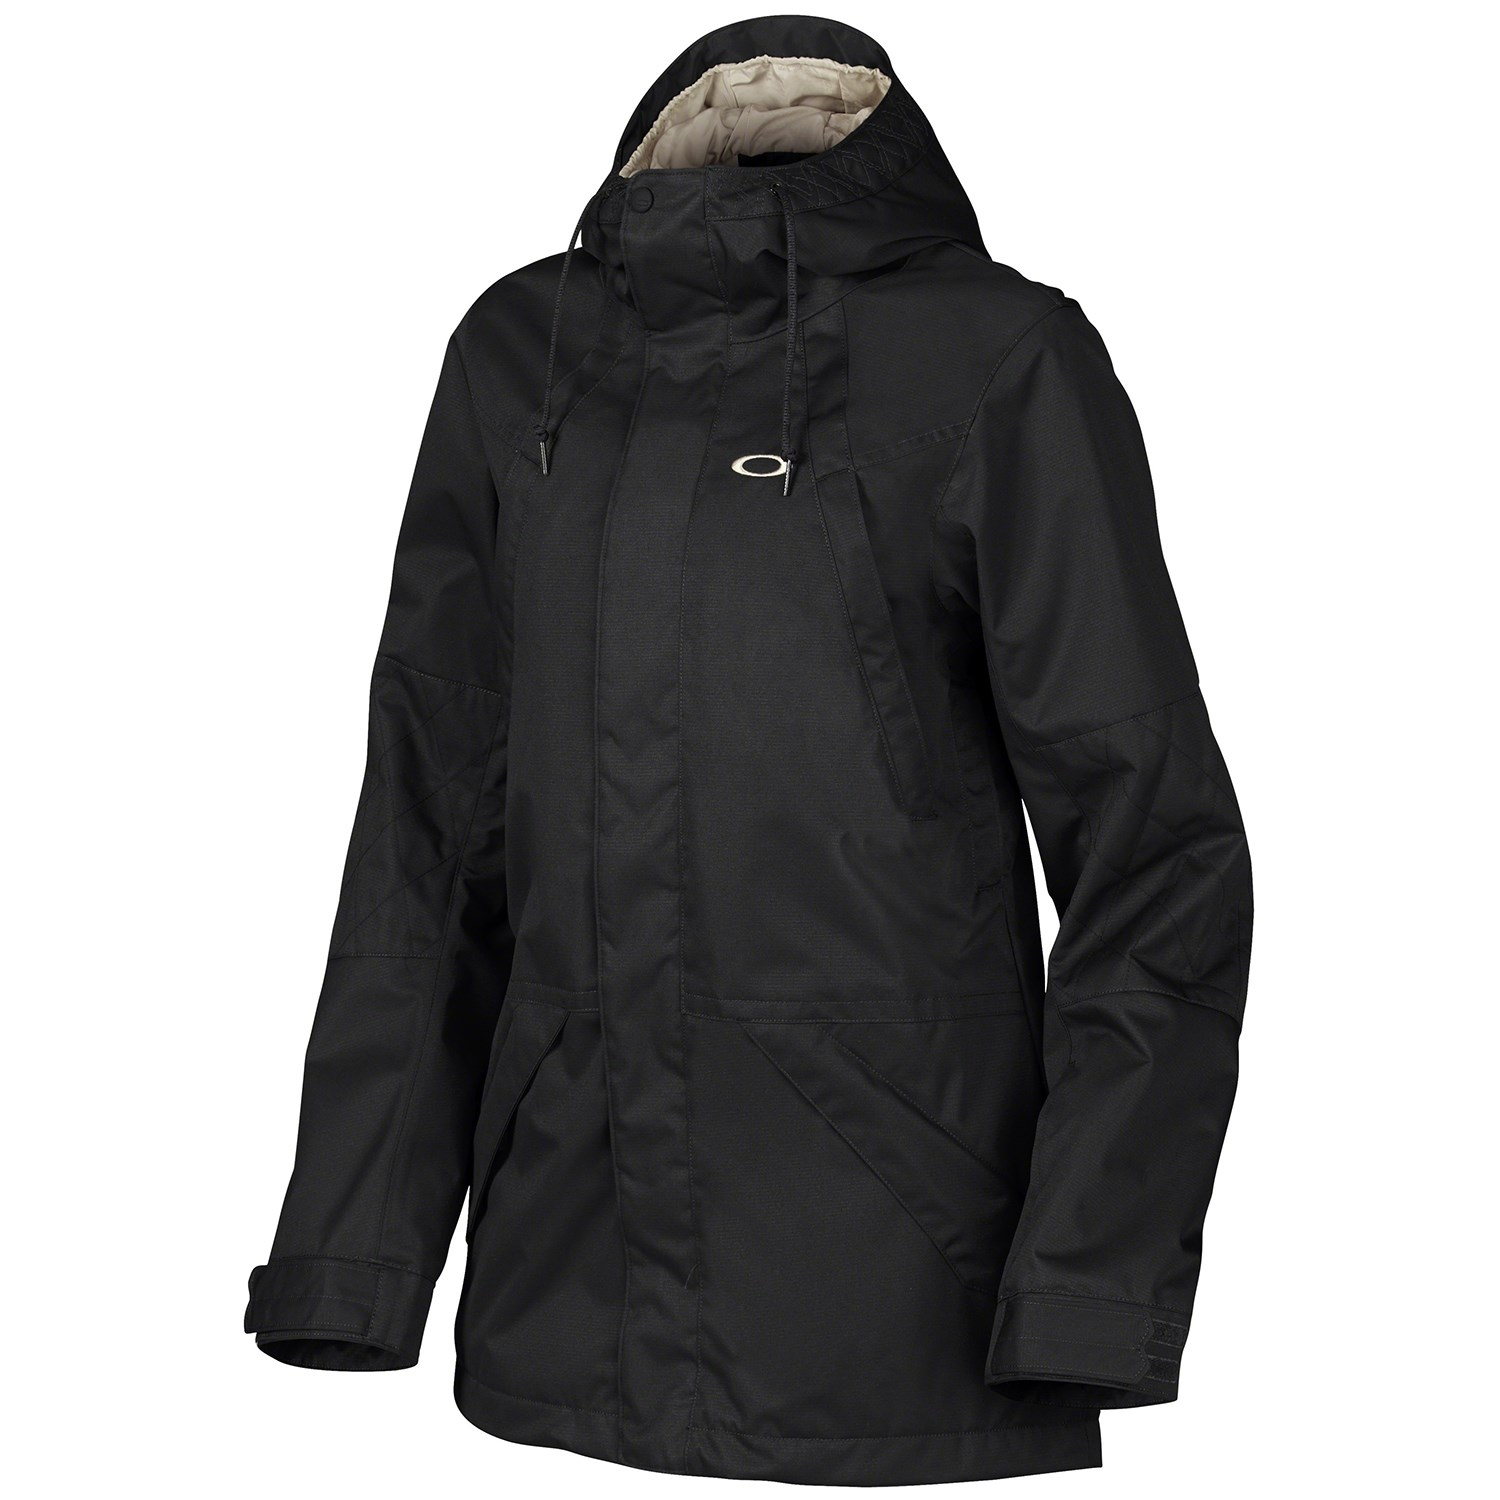 oakley ski jackets on sale  oakley willow biozone jacket women s jet black